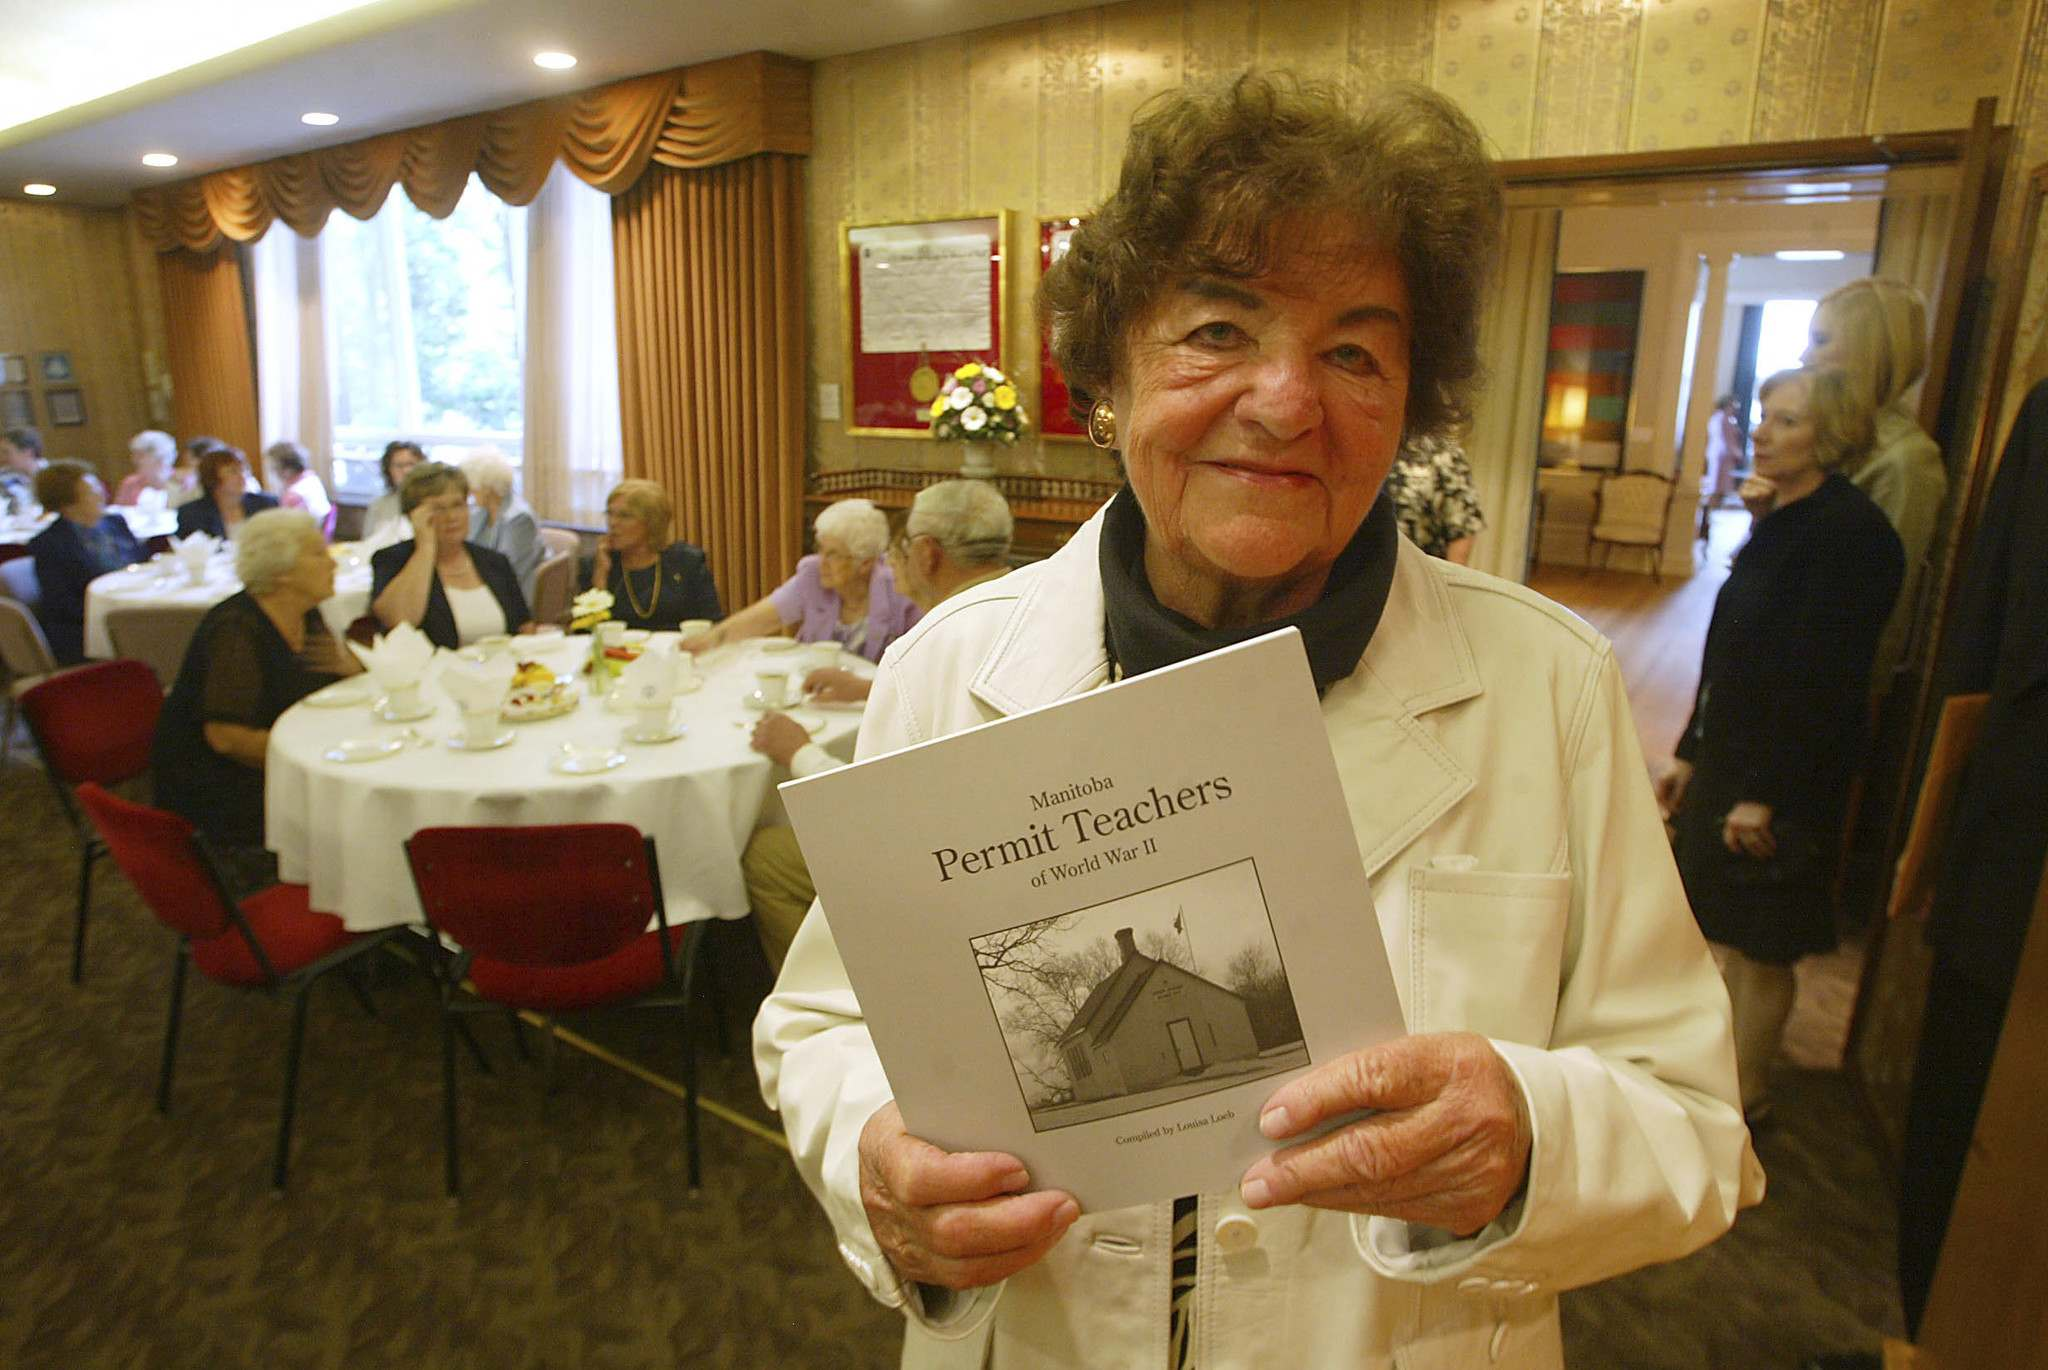 Marc Gallant / Winnipeg Free Press files</p><p>Louisa Loeb compiled a book of permit teachers' experiences for the inaugural reunion at government house in 2007.</p>